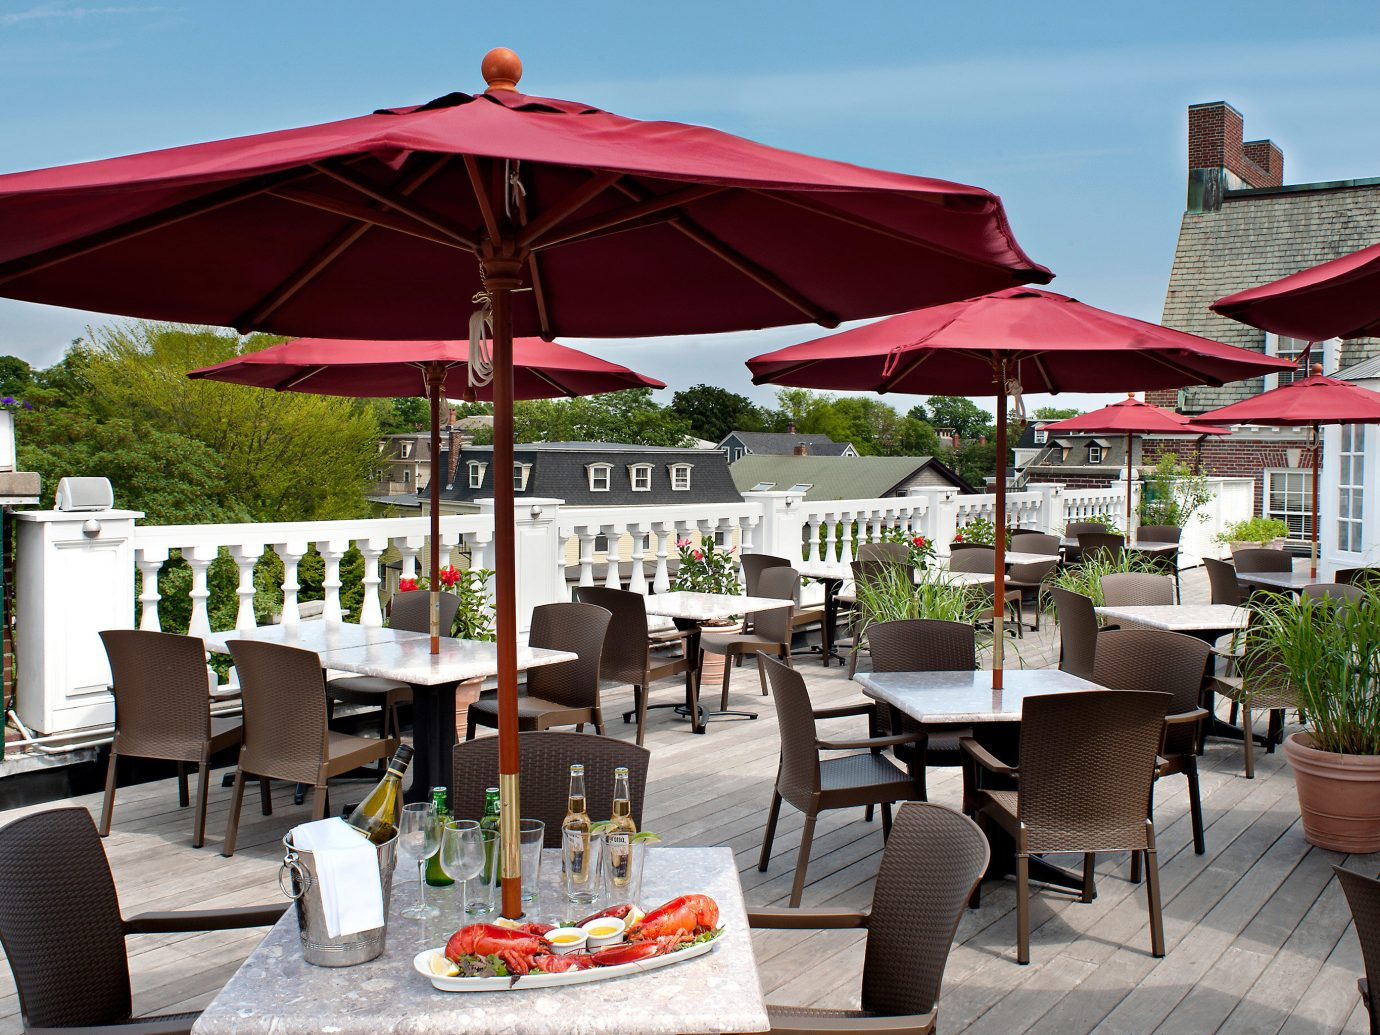 Hotels table chair outdoor umbrella Dining restaurant Resort set outdoor structure furniture several day